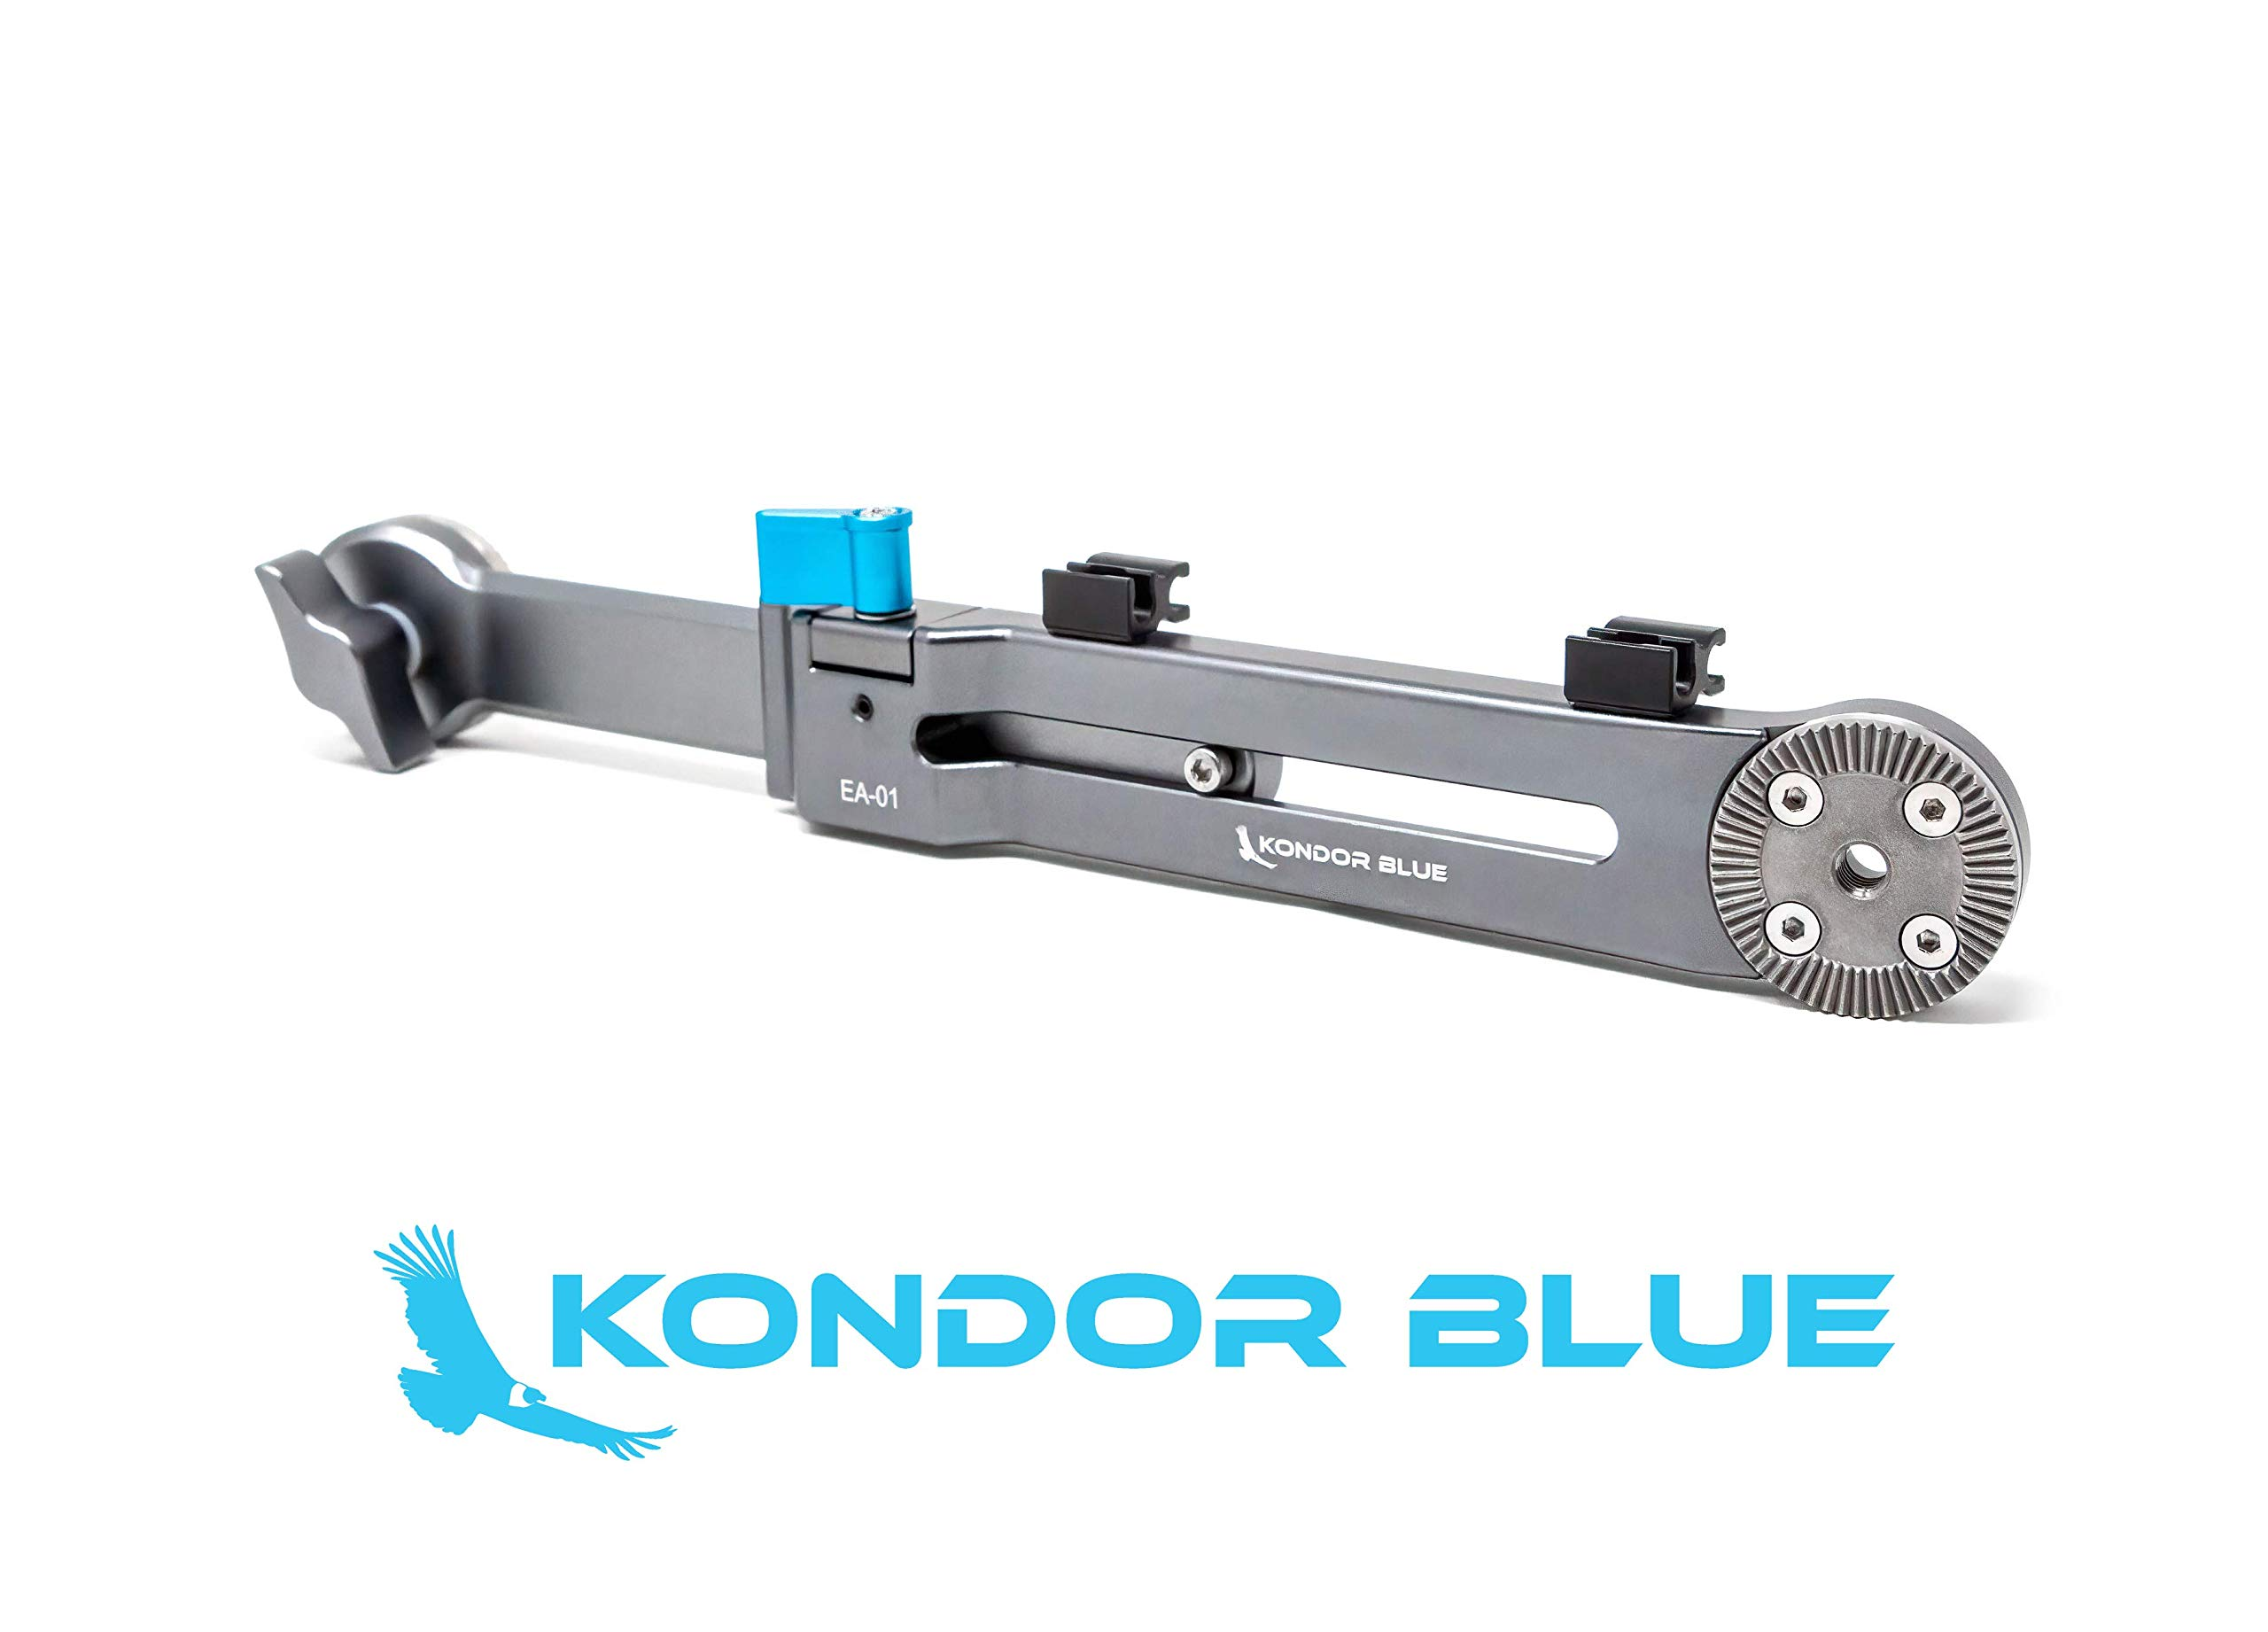 KONDOR BLUE Rosette Extension Arm Adjustable Length ARRI Rosette Shoulder Rig Camera Handgrip Extender RED URSA C500 F5 Alexa BMPCC 4K 6K (Extension Arm) by KONDOR BLUE